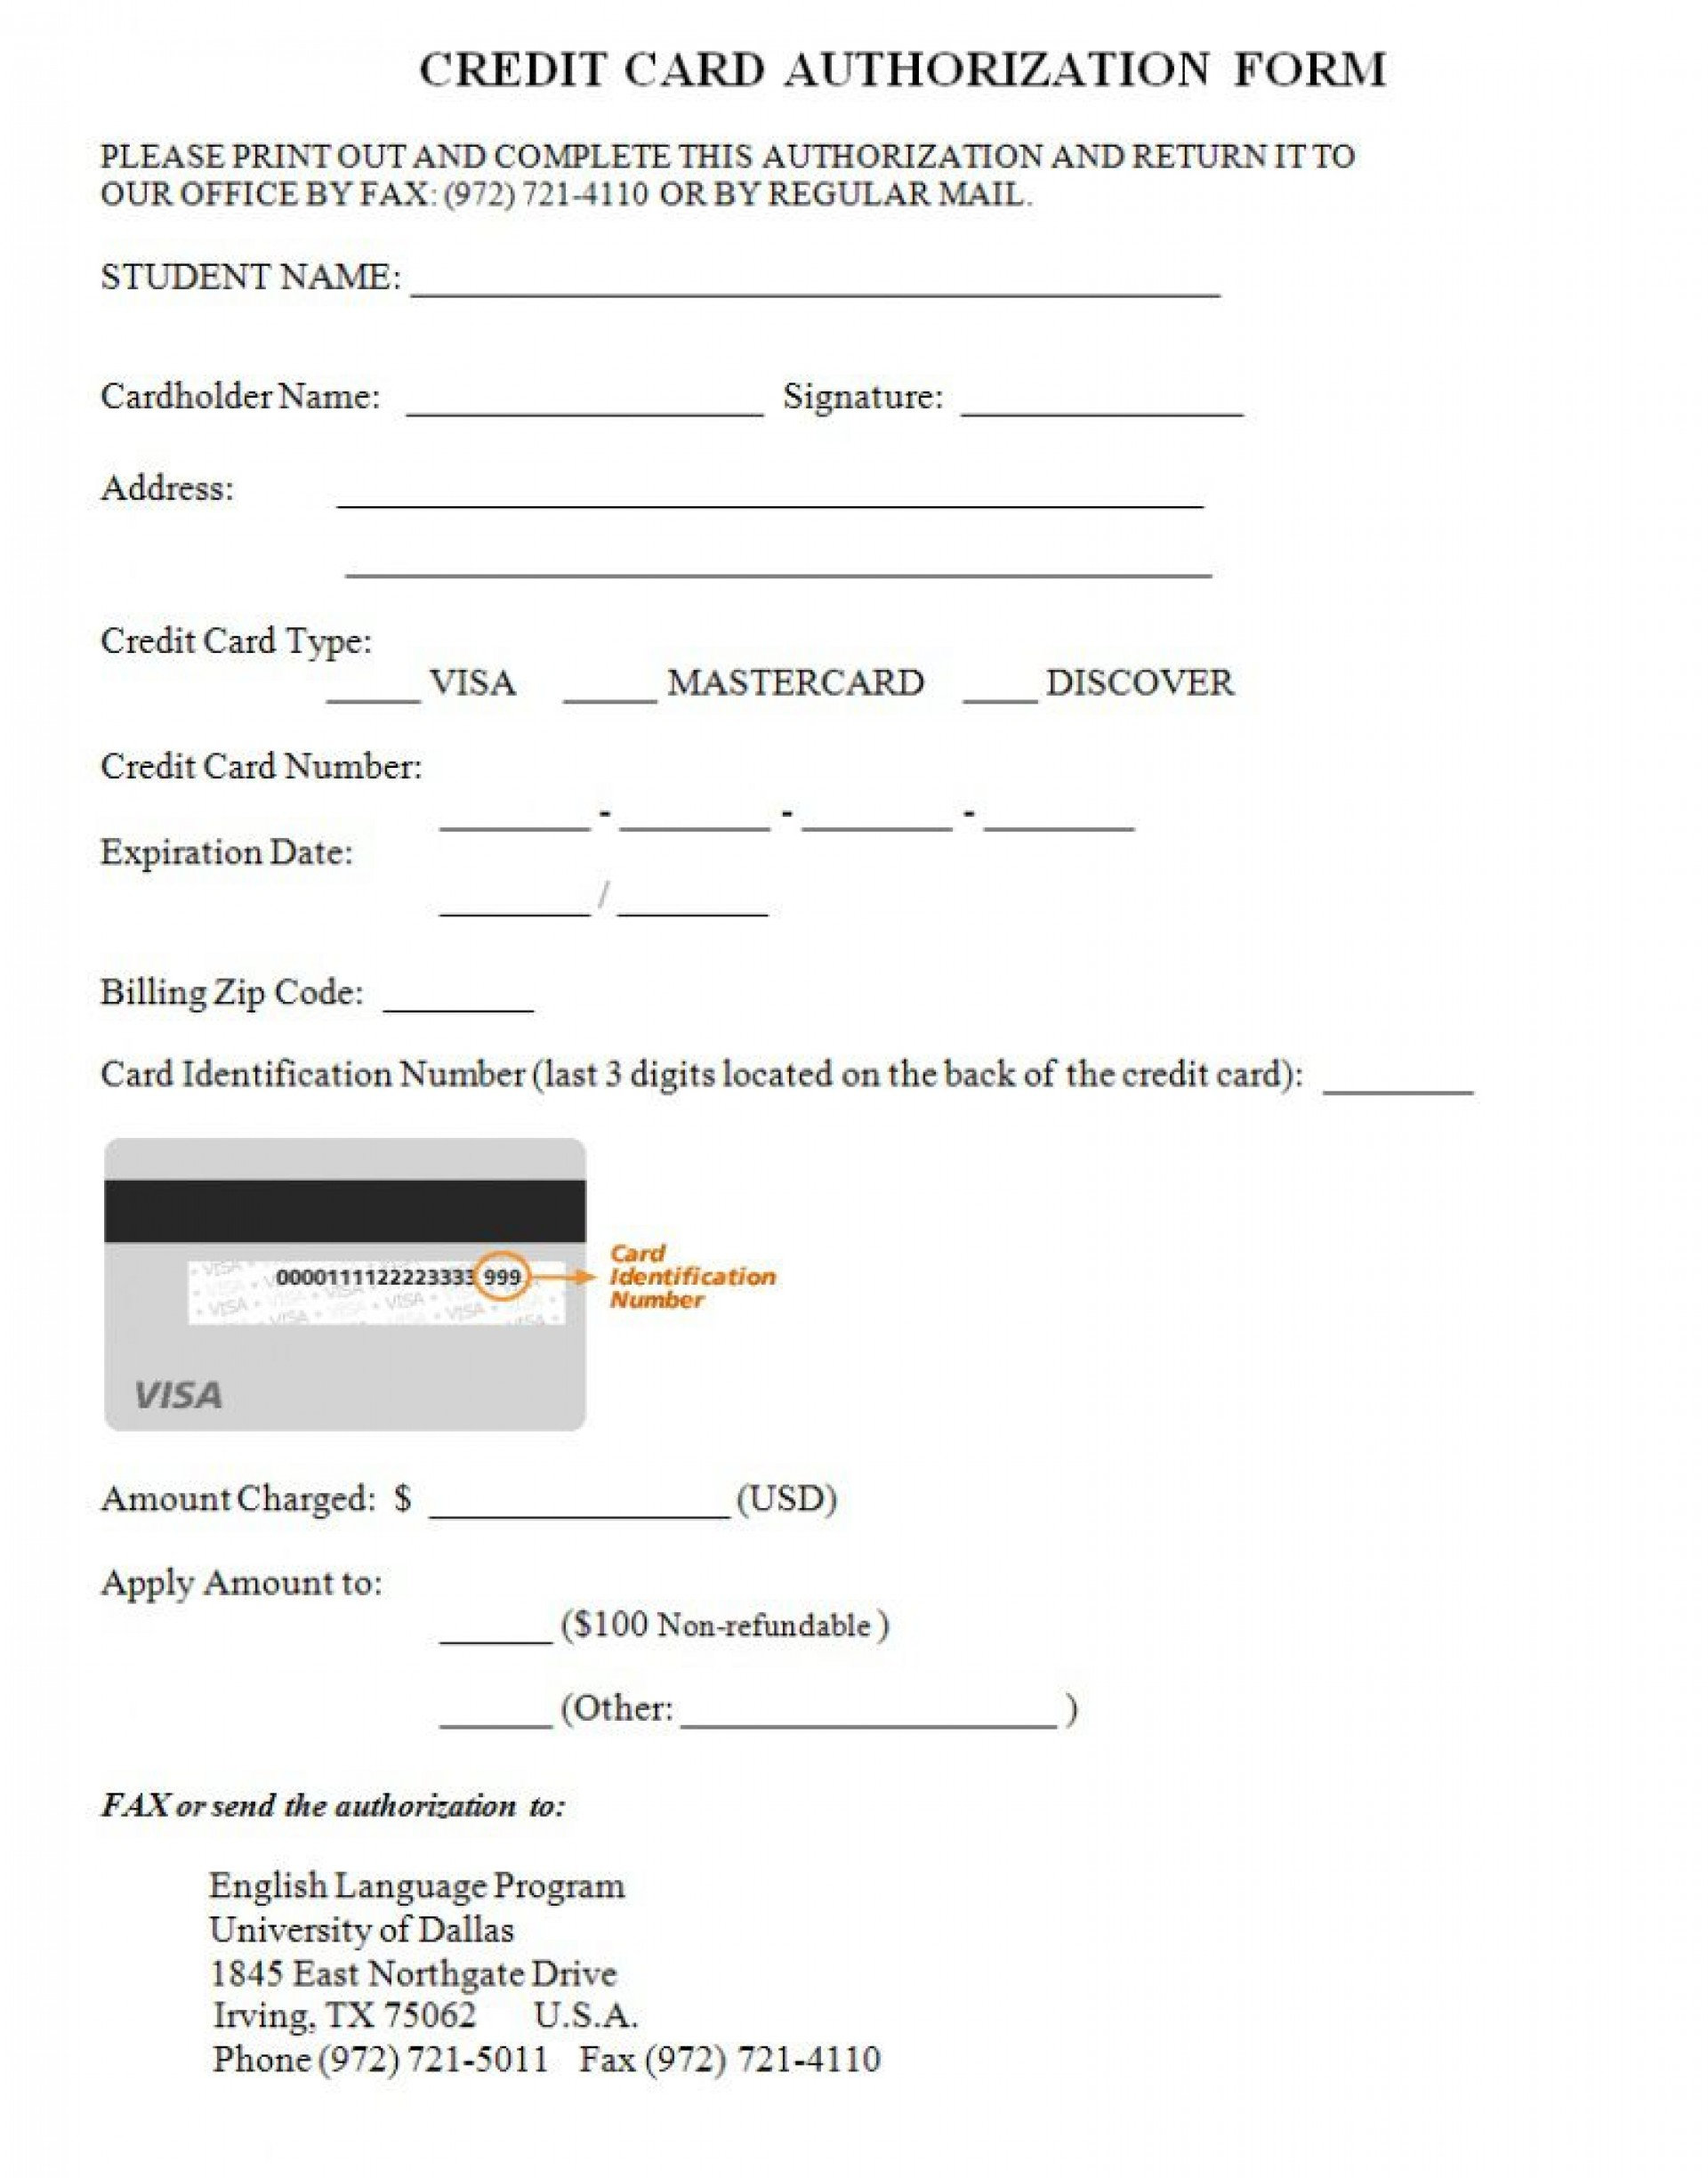 000 Archaicawful Credit Card Form Template Idea  Html Example Codepen Authorization Free1920